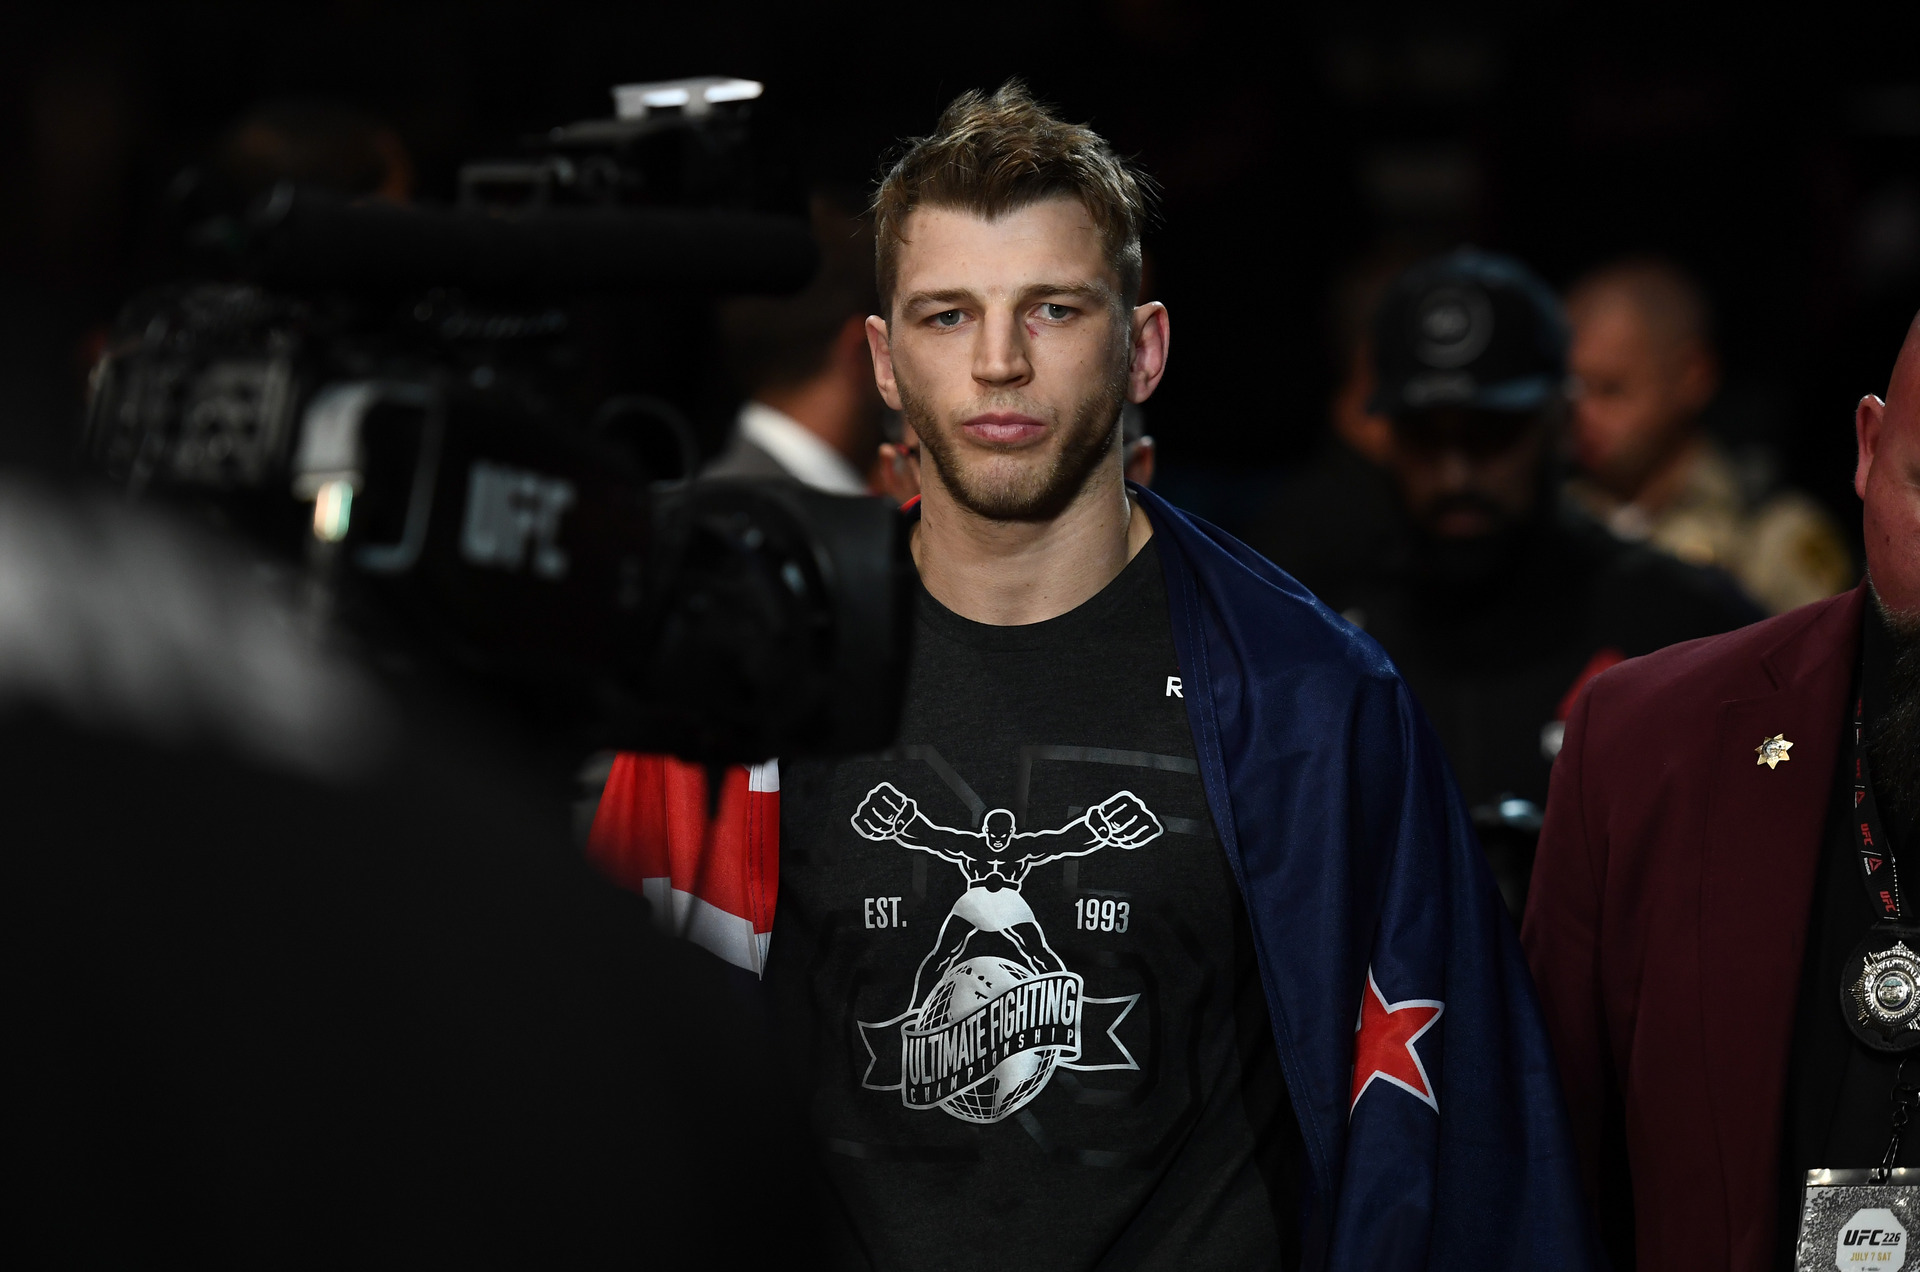 UFC: Dan Hooker books date with Edson Barboza at UFC Fight